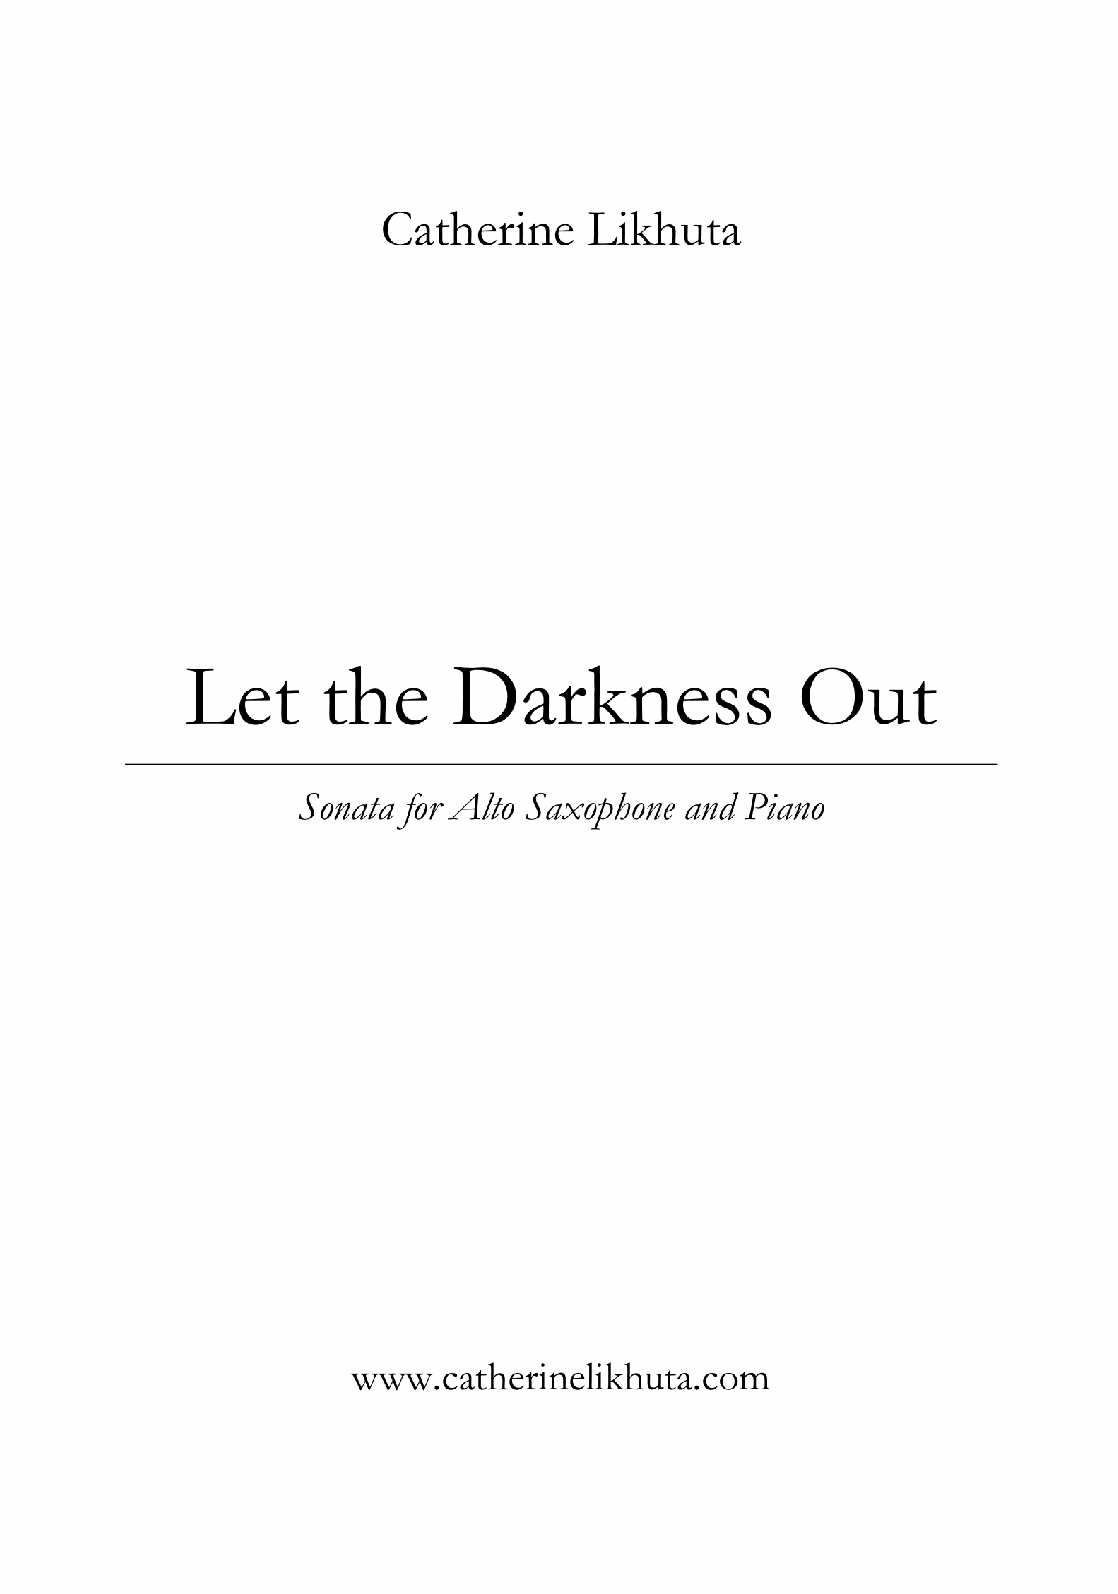 Let The Darkness Out by Catherine Likhuta